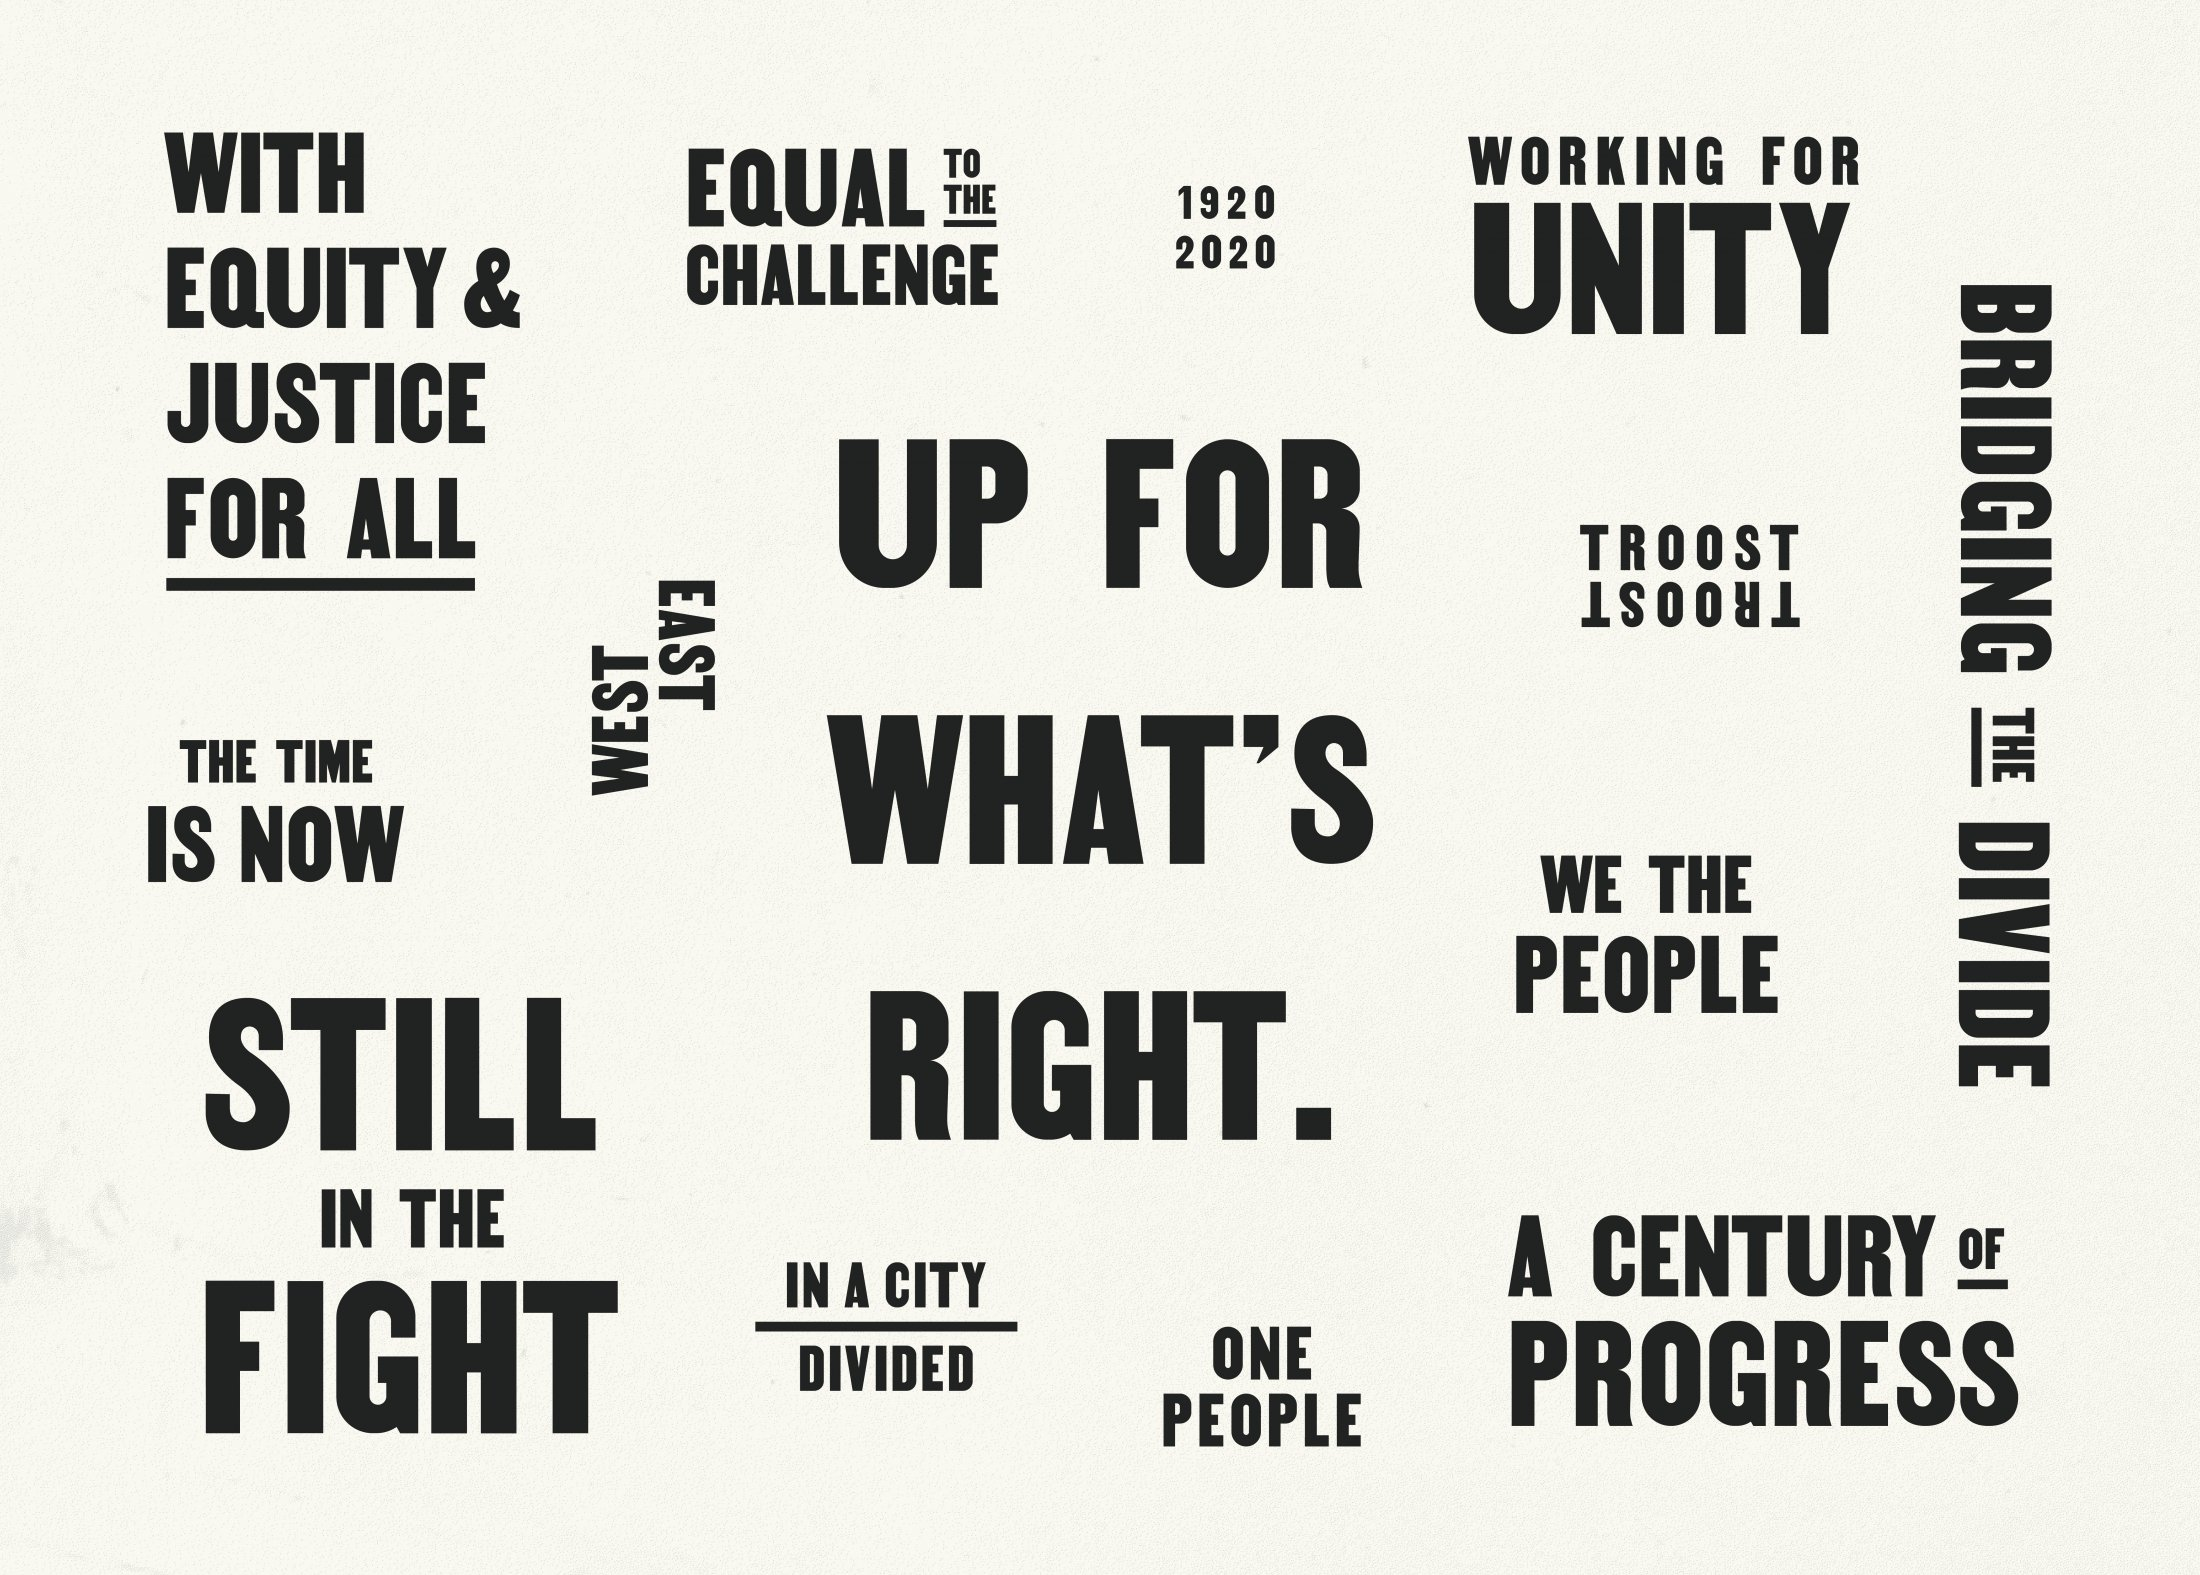 Thumbnail for Equal to the Challenge Identity System